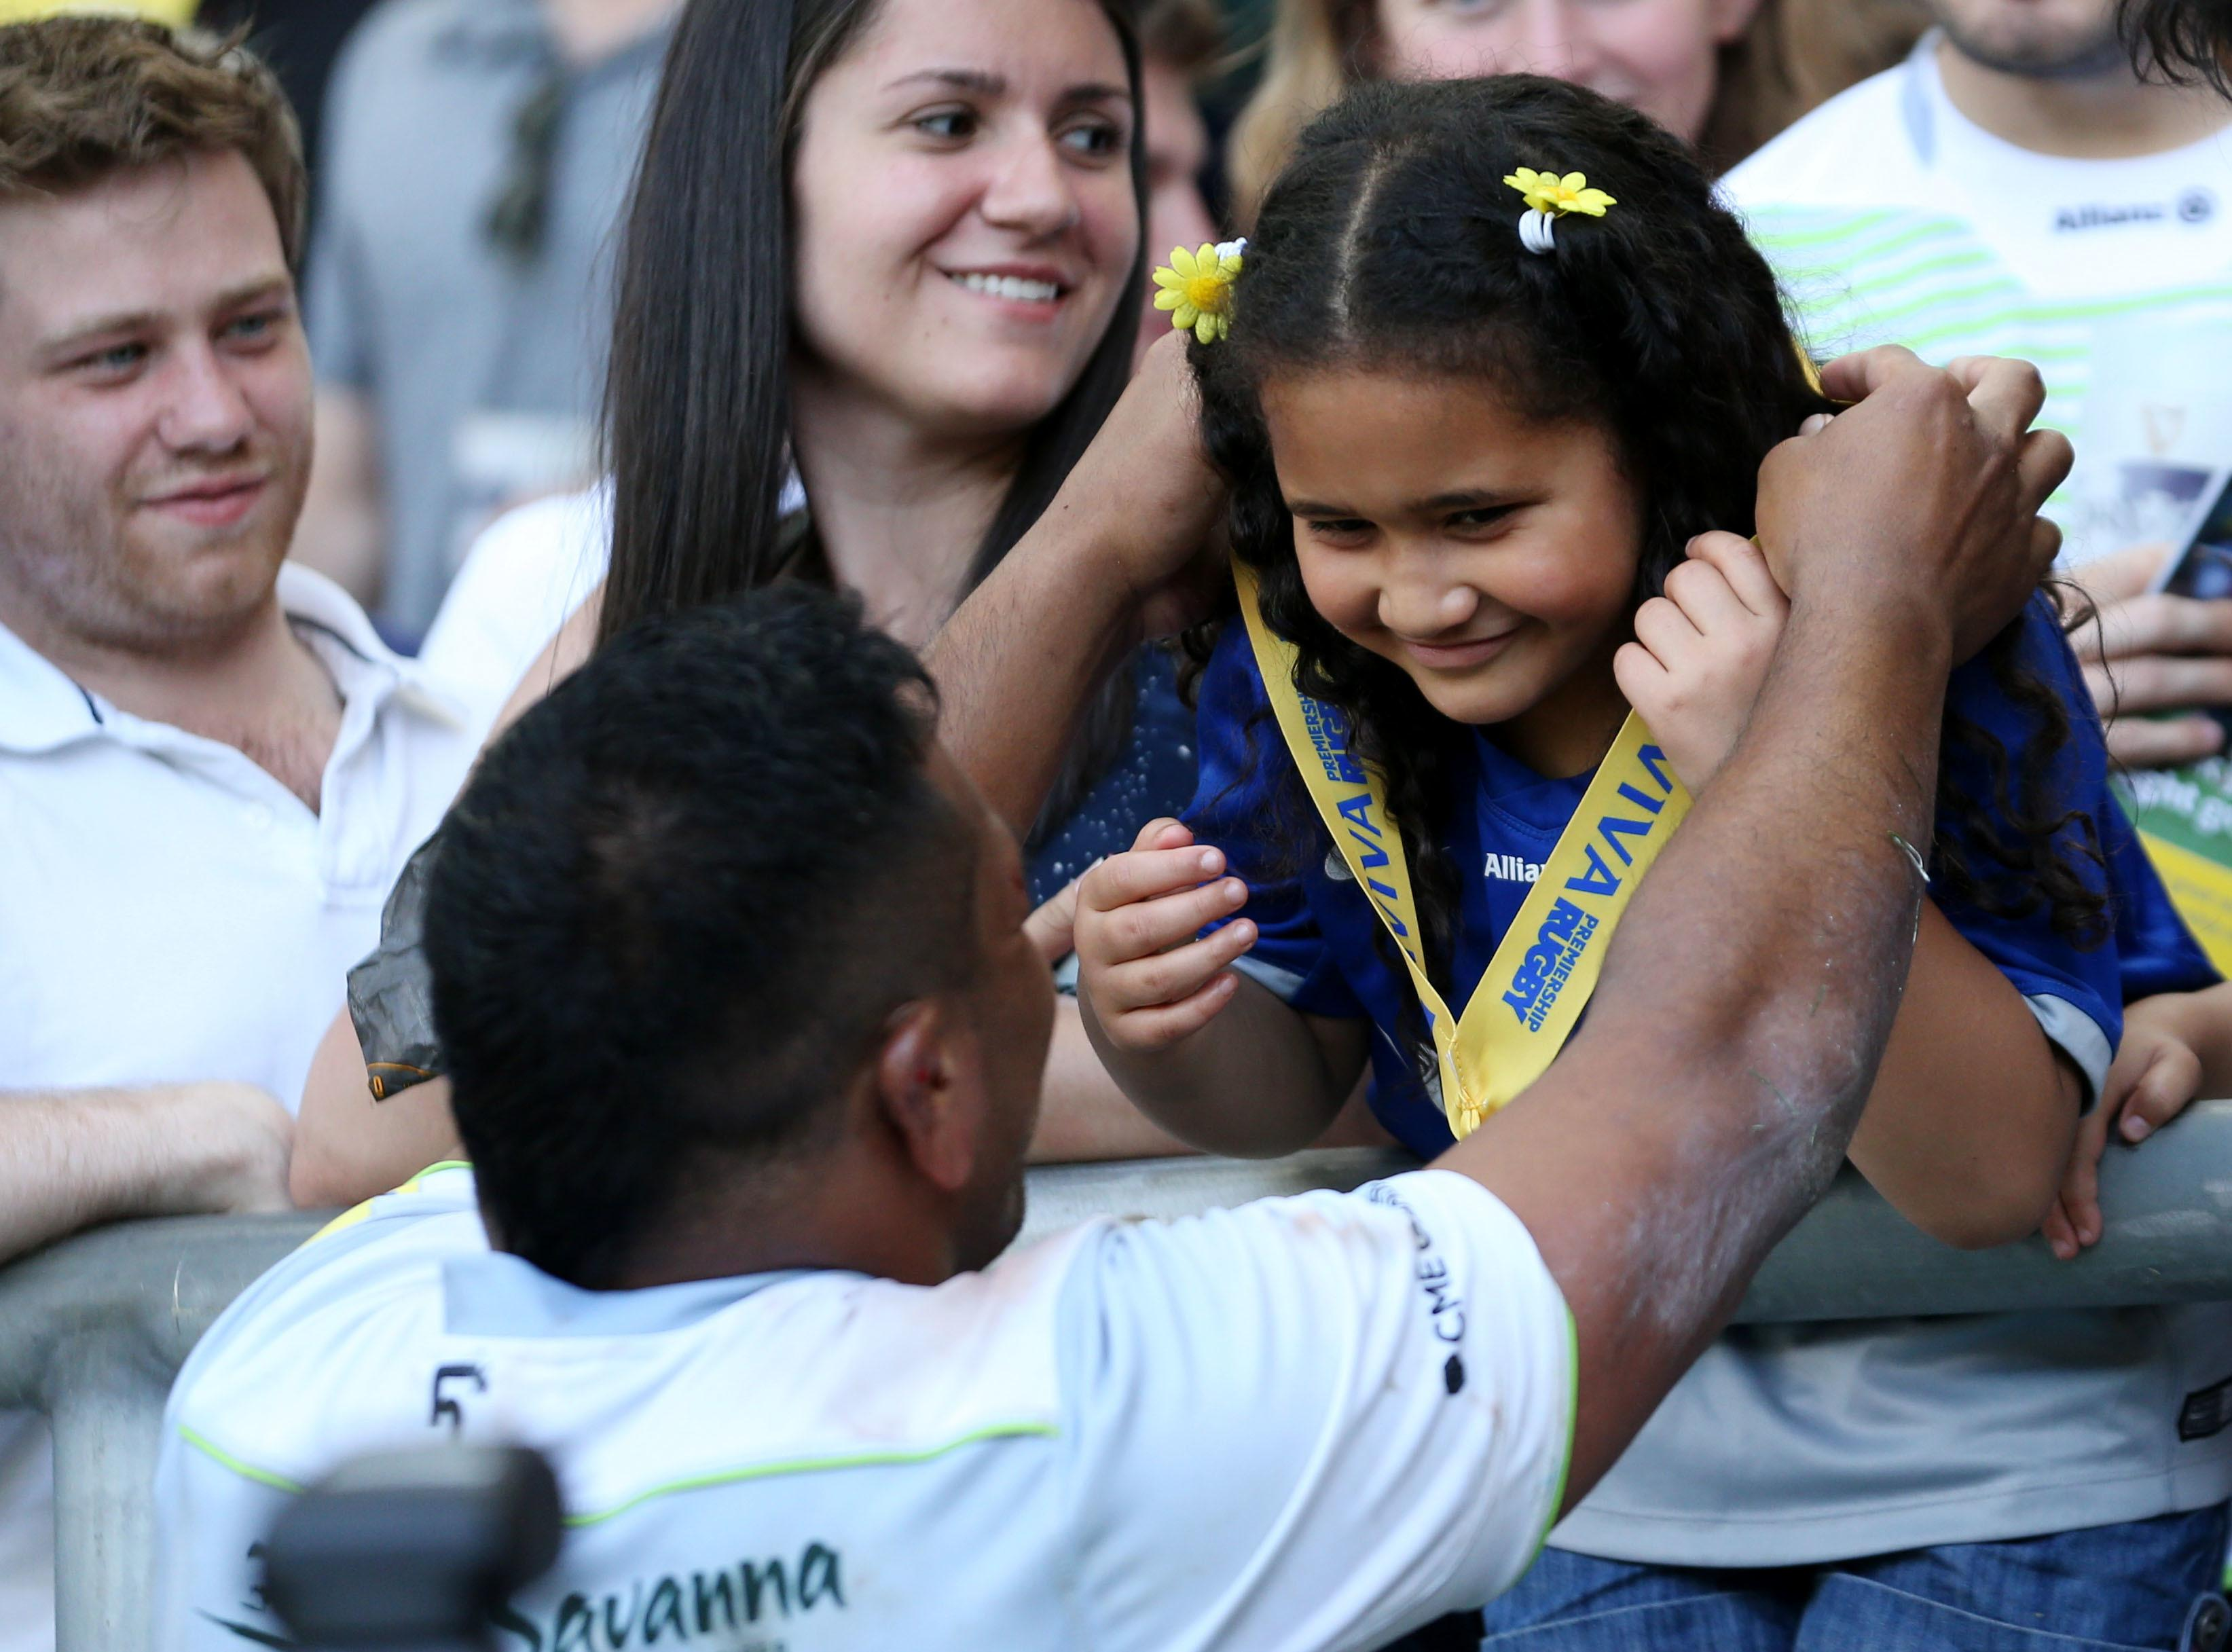 Mako Vinipola gives his winners' medal to his family